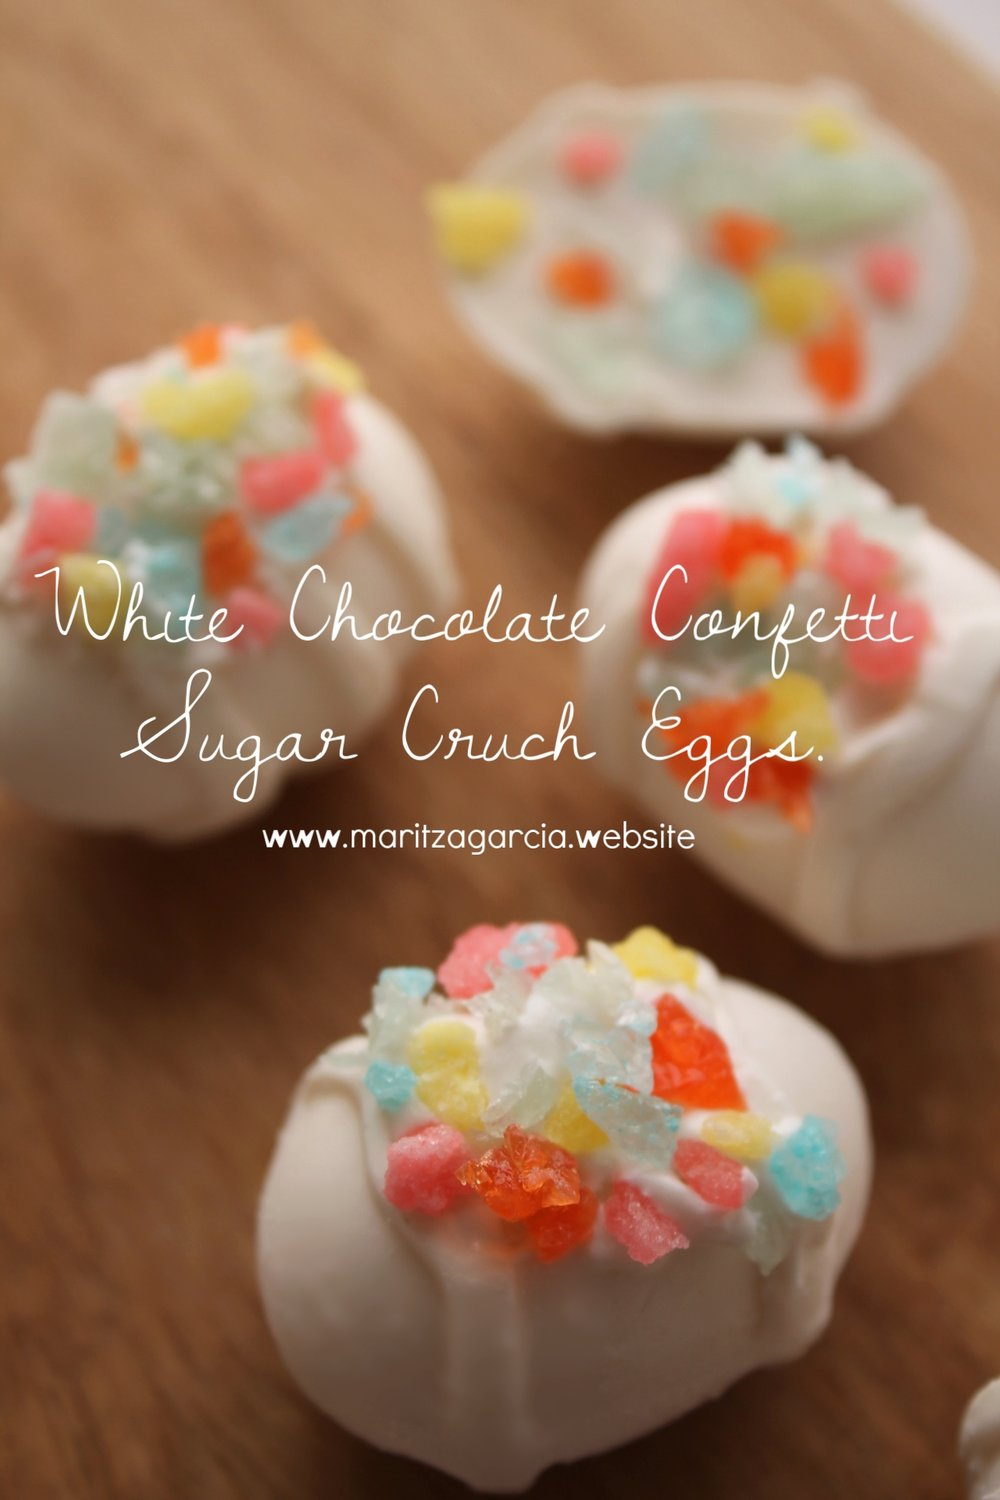 White Chocolate Confetti Sugar Crunch Eggs.